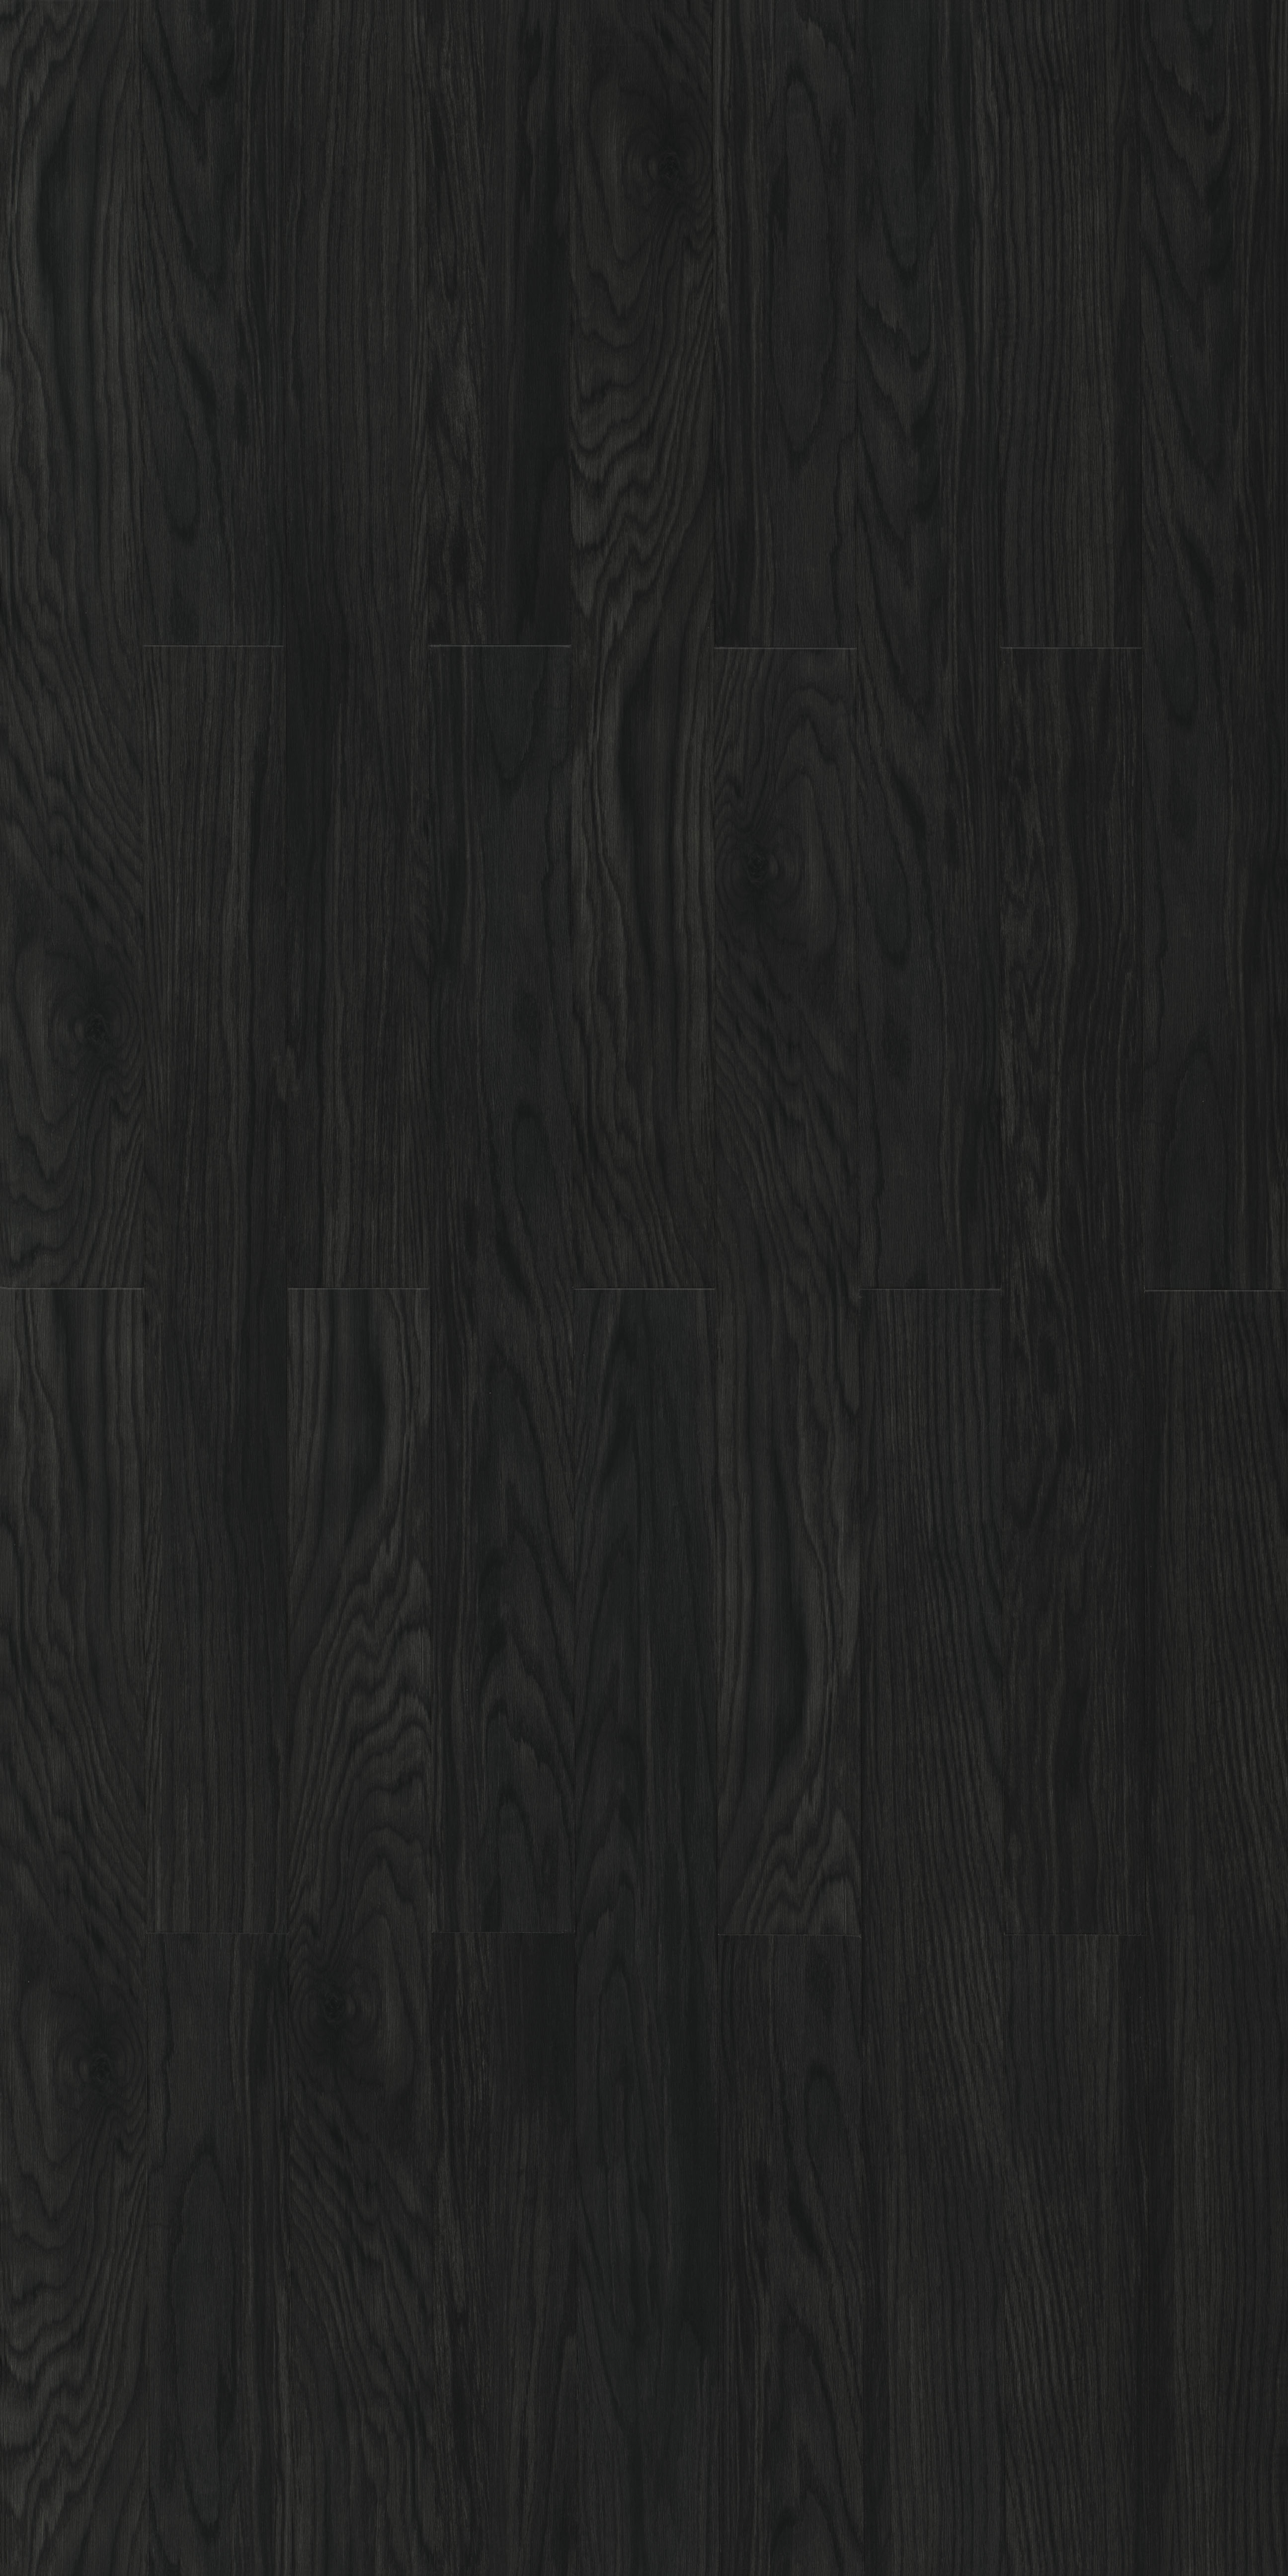 Roan Oak Charcoal Tp039 Armstrong Flooring Commercial